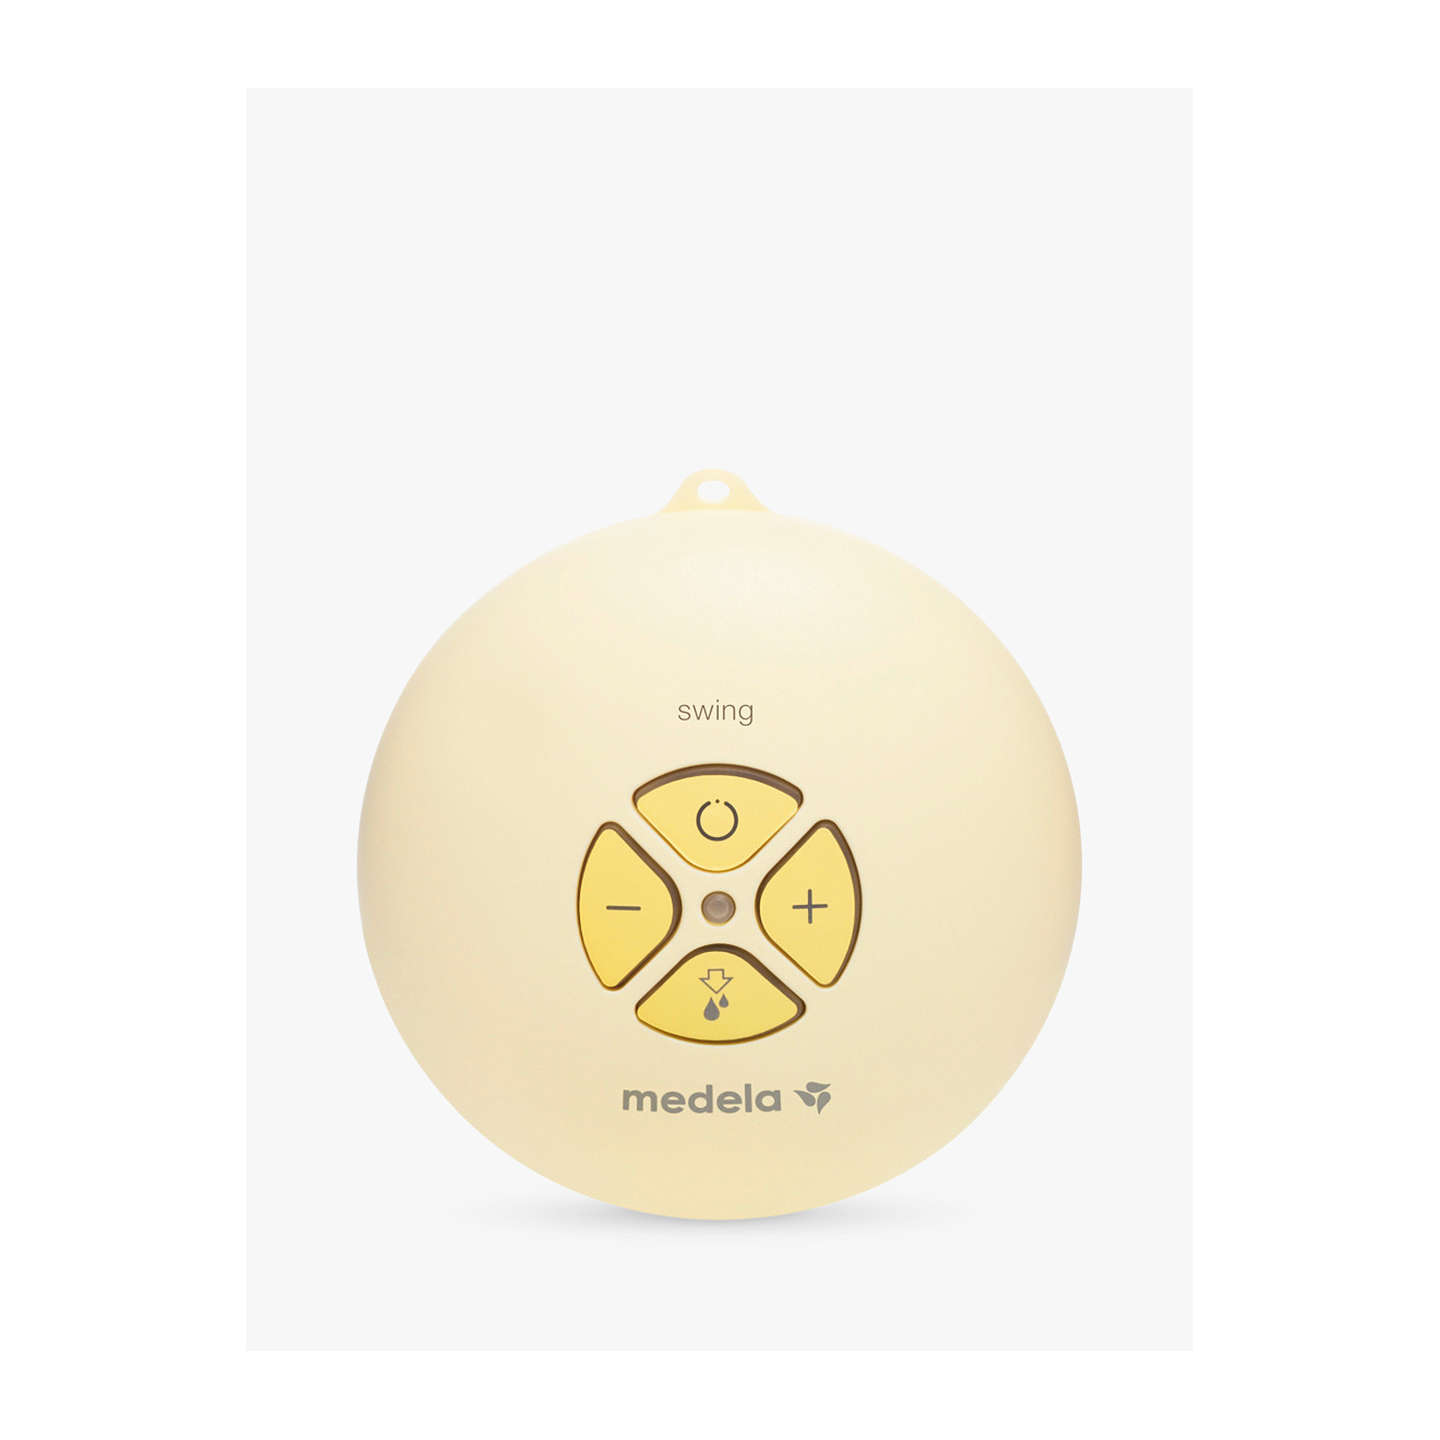 BuyMedela Swing Breast Pump with Calma Teat Online at johnlewis.com